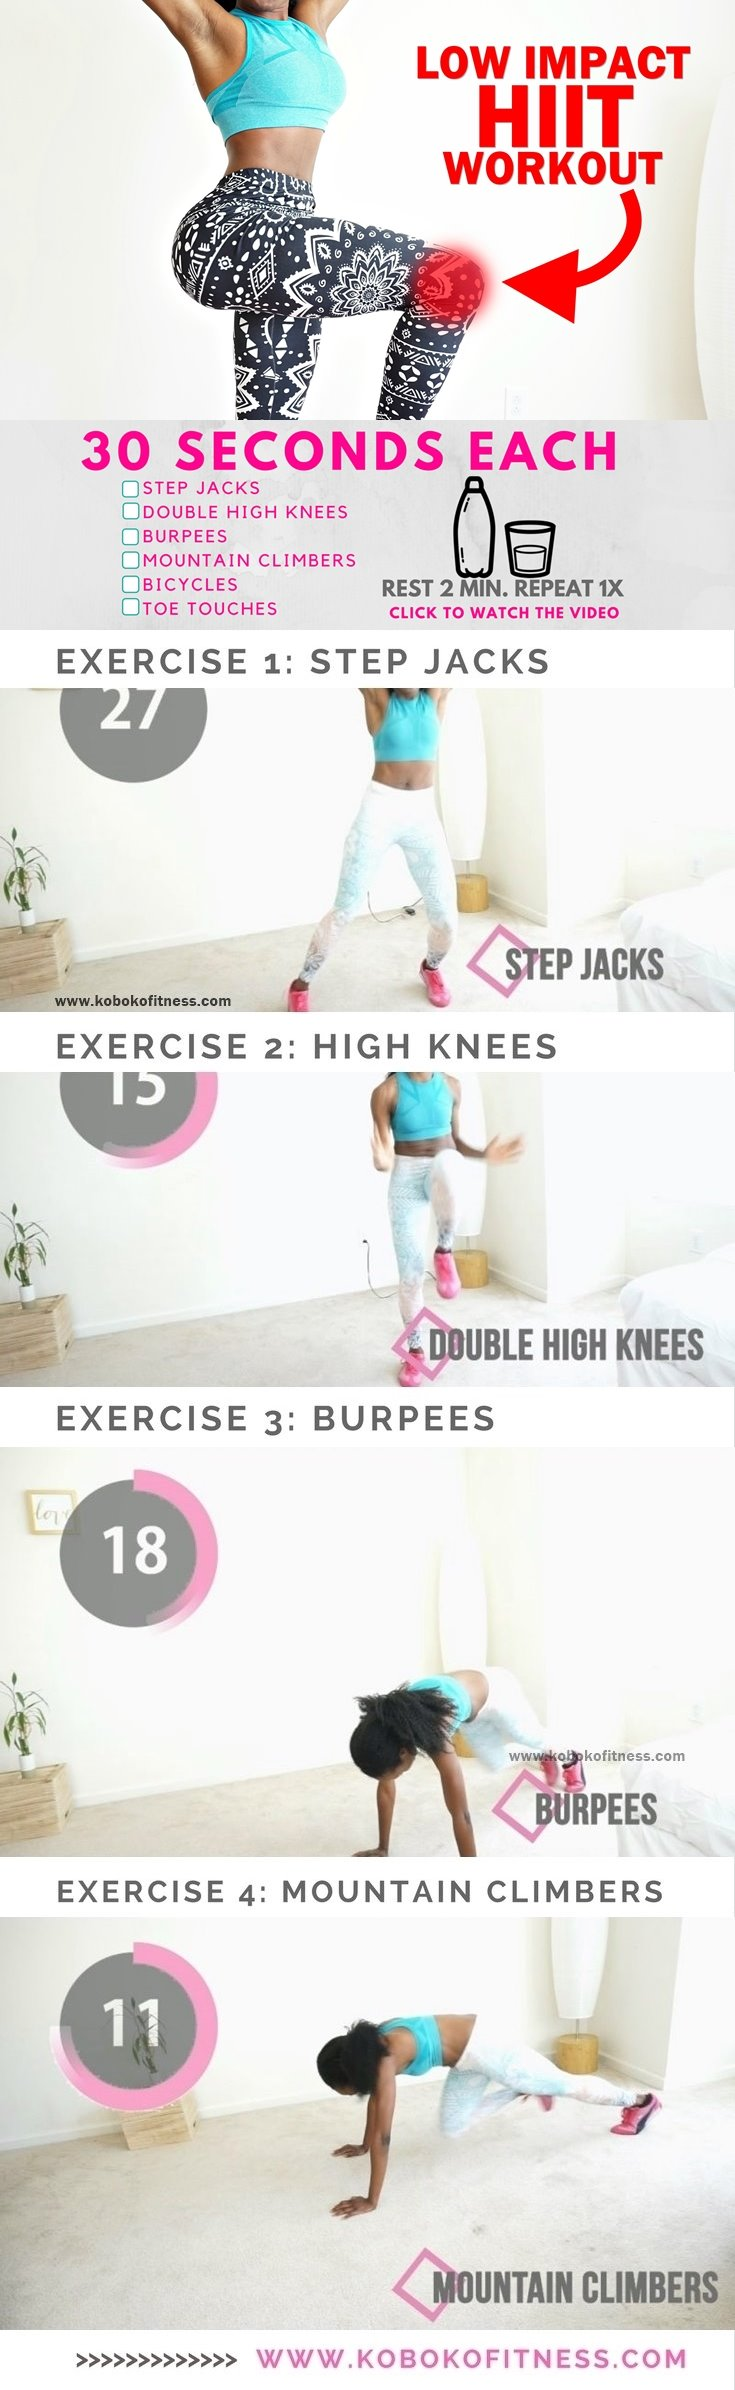 hiit workout 10 minutes low impact full workout video. Black Bedroom Furniture Sets. Home Design Ideas